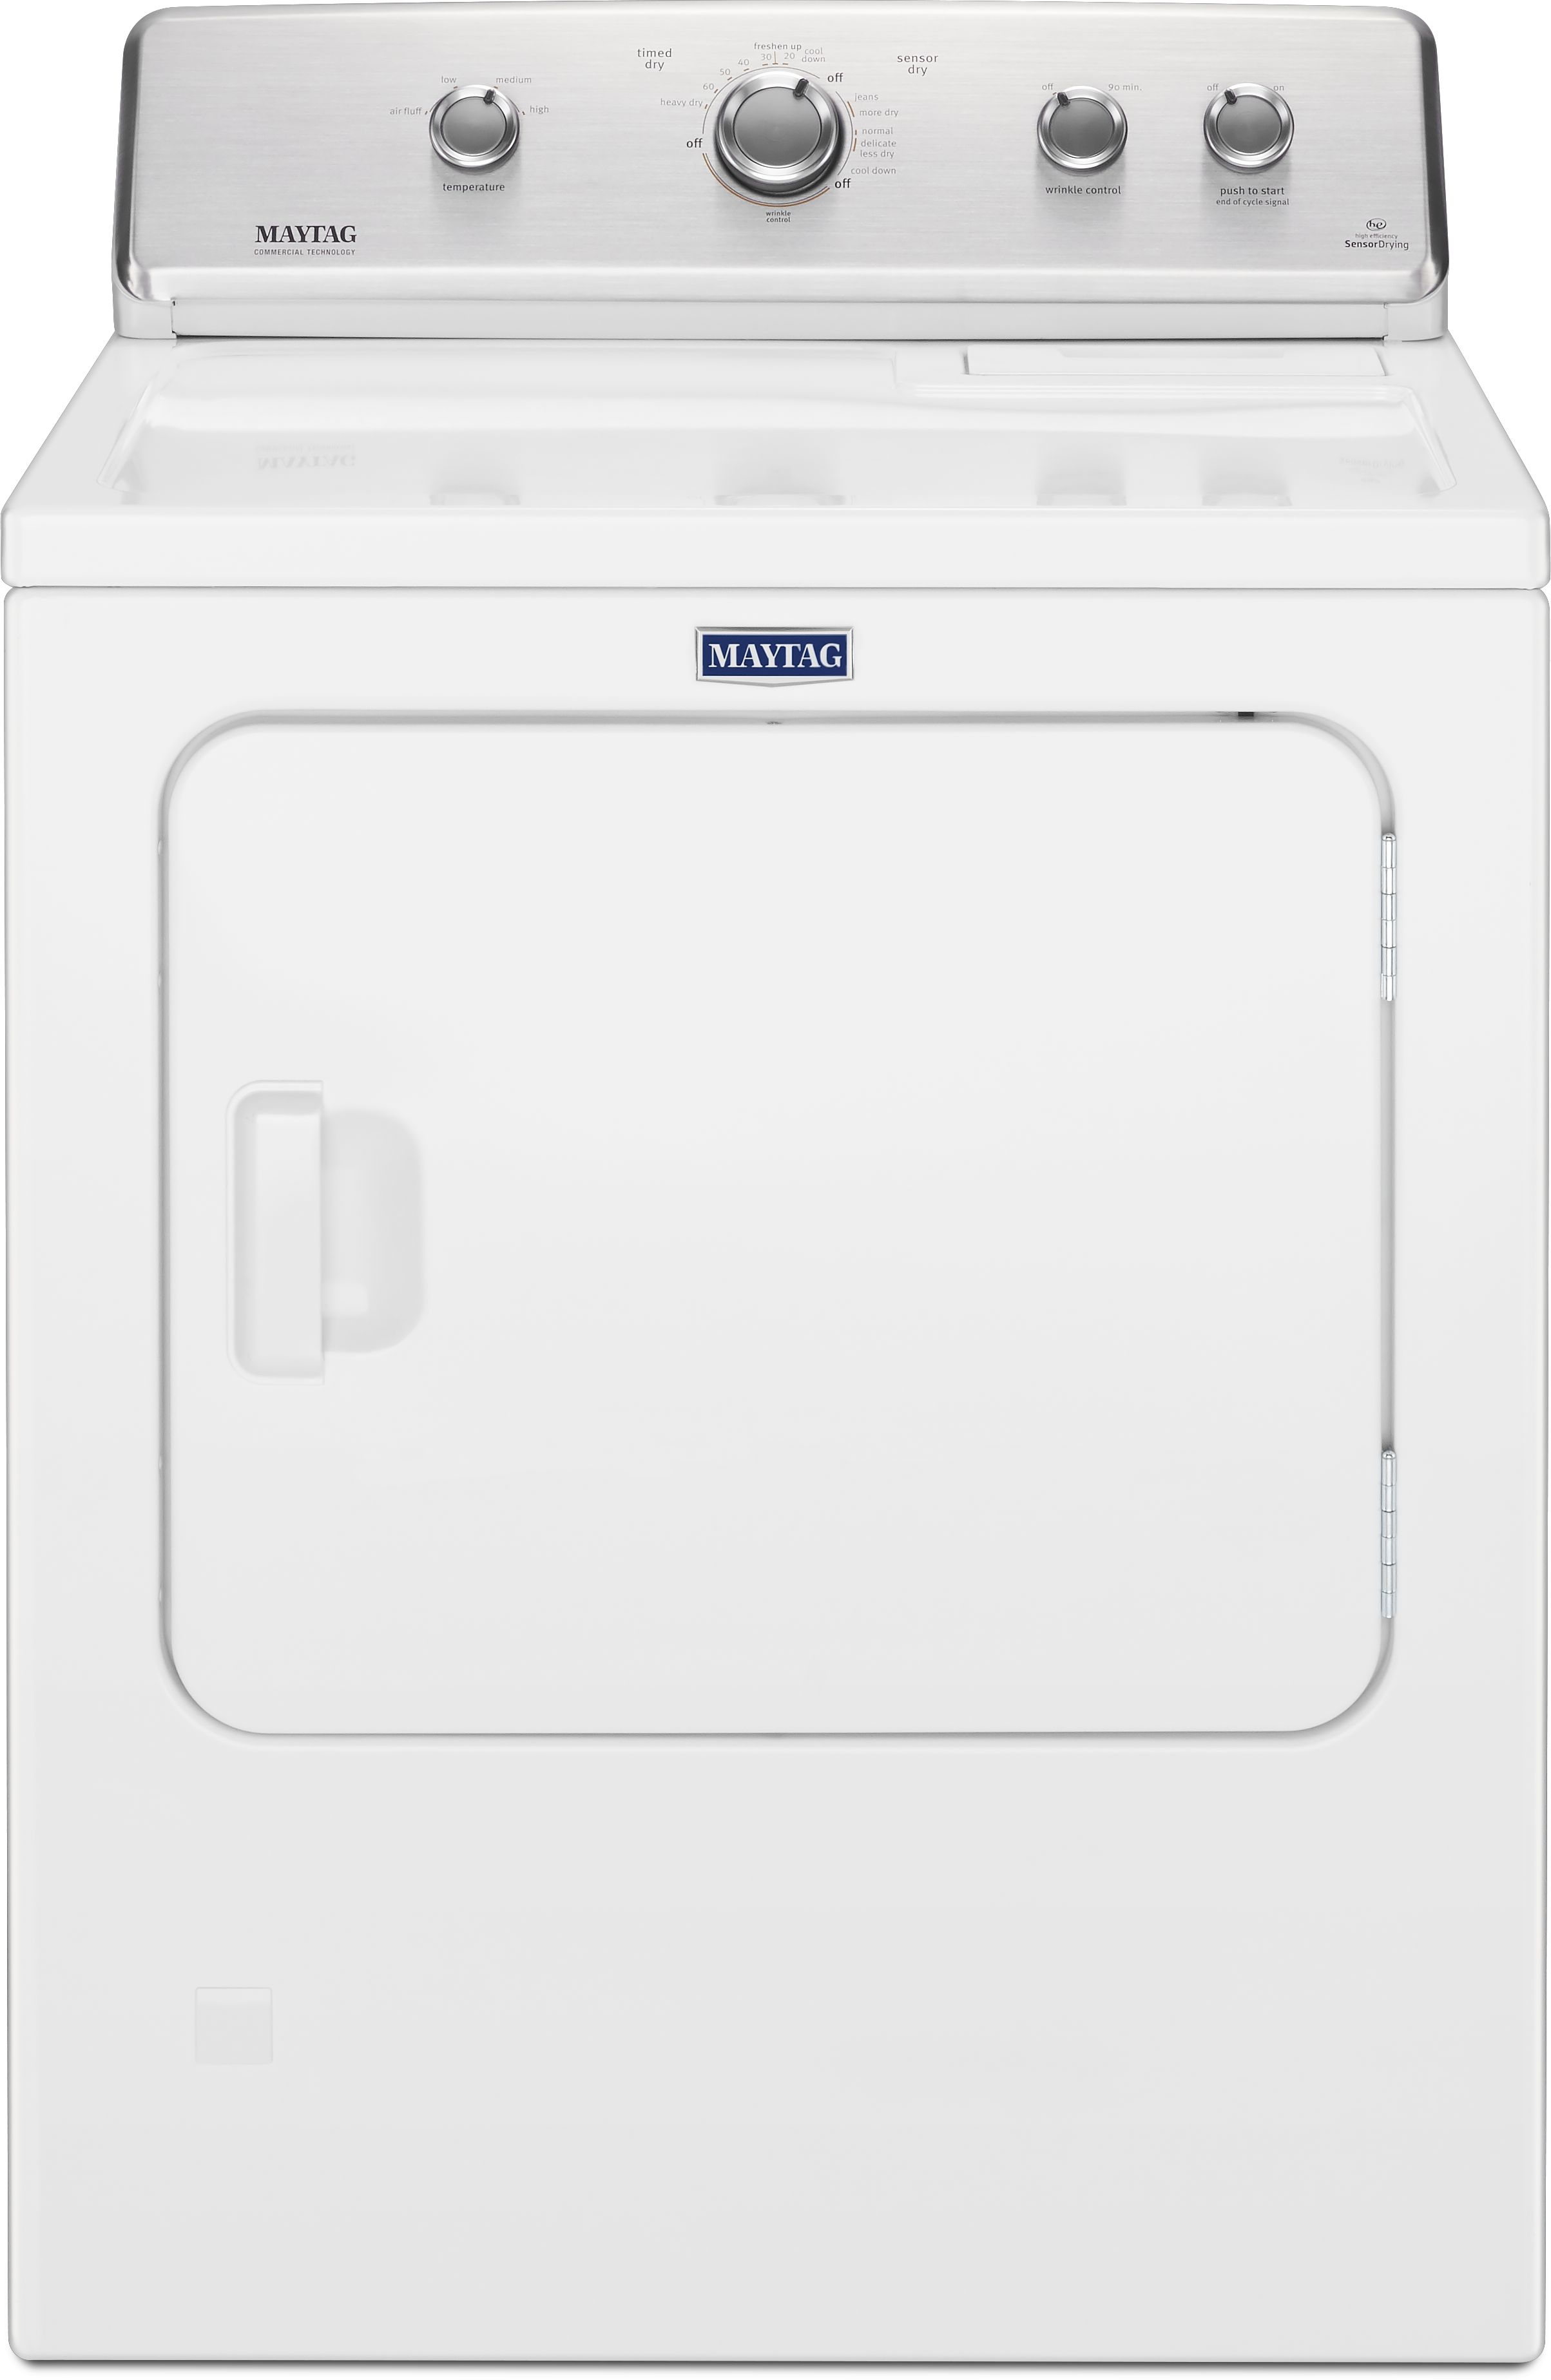 Inspirational Maytag Dryer with Drying Cabinet